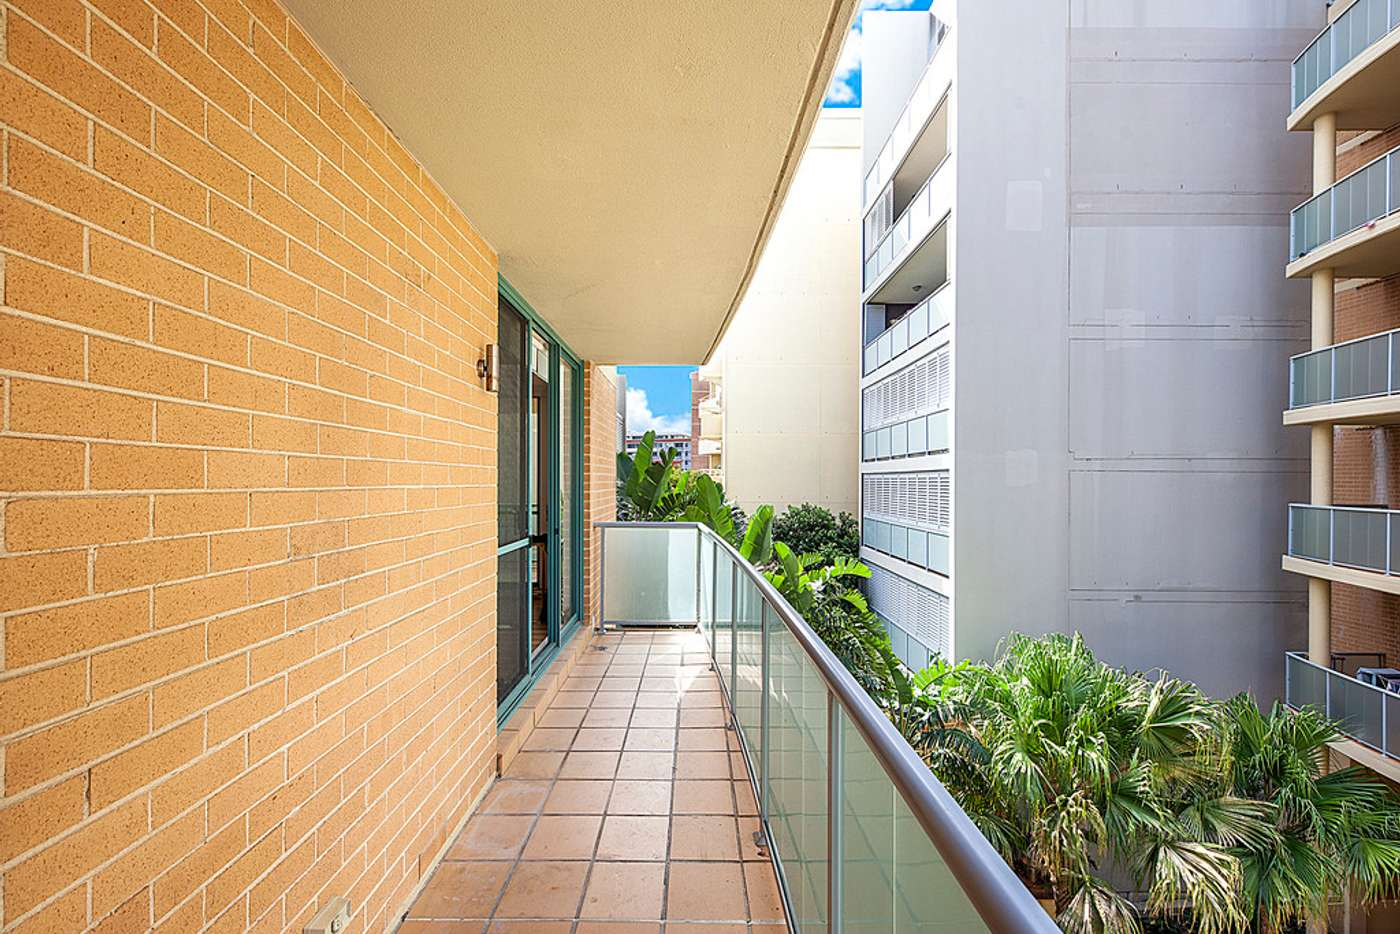 Sixth view of Homely apartment listing, 34/805 ANZAC PARADE, Maroubra NSW 2035